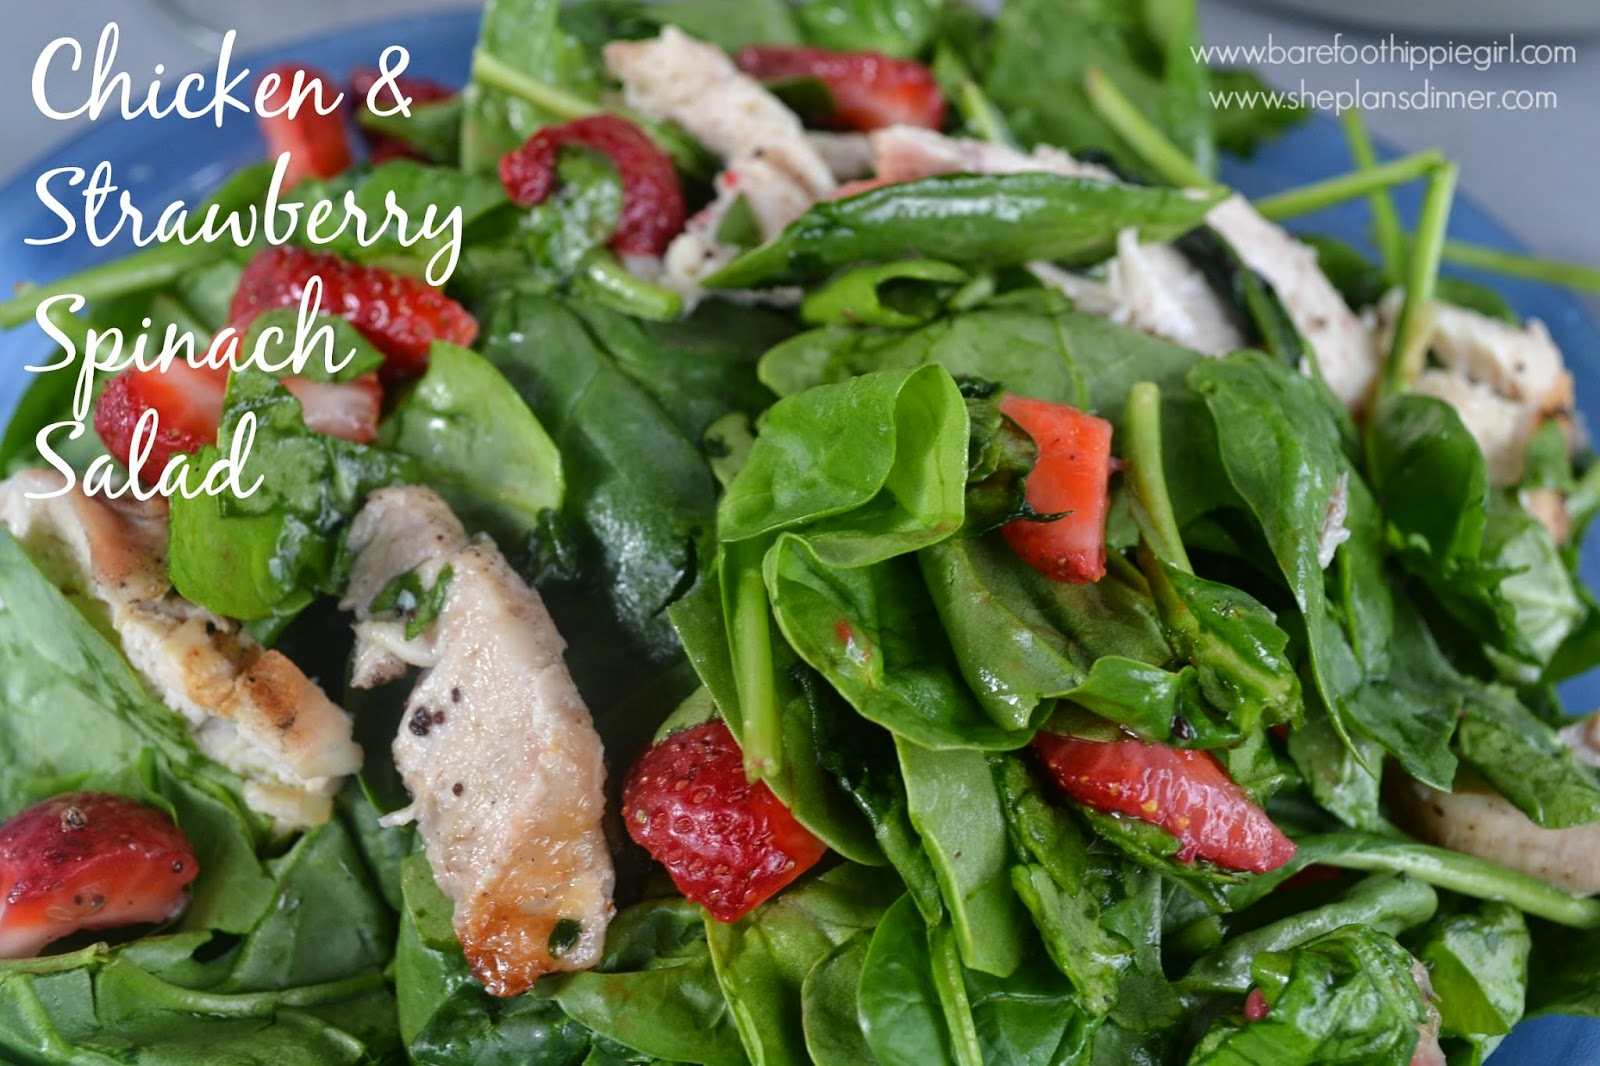 Barefoot Hippie Girl: Chicken & Strawberry Spinach Salad